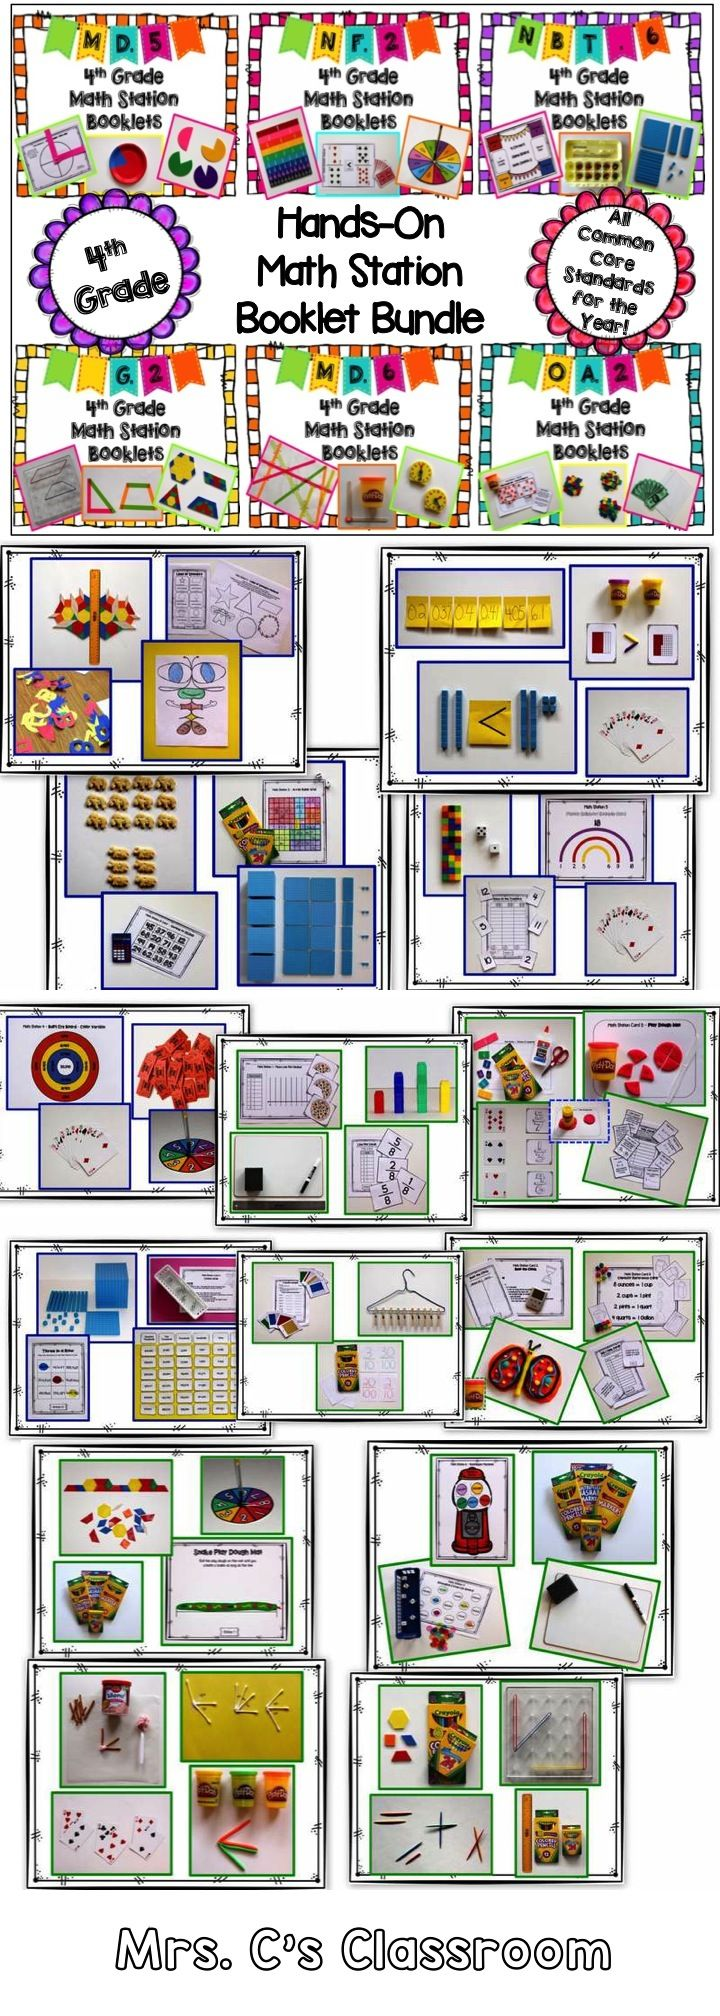 Discounted Price.  This 4th grade yearlong hands-on math station booklet bundle contains 900 pages! There are 28 booklets, plus resources, for ALL the common core math standards.